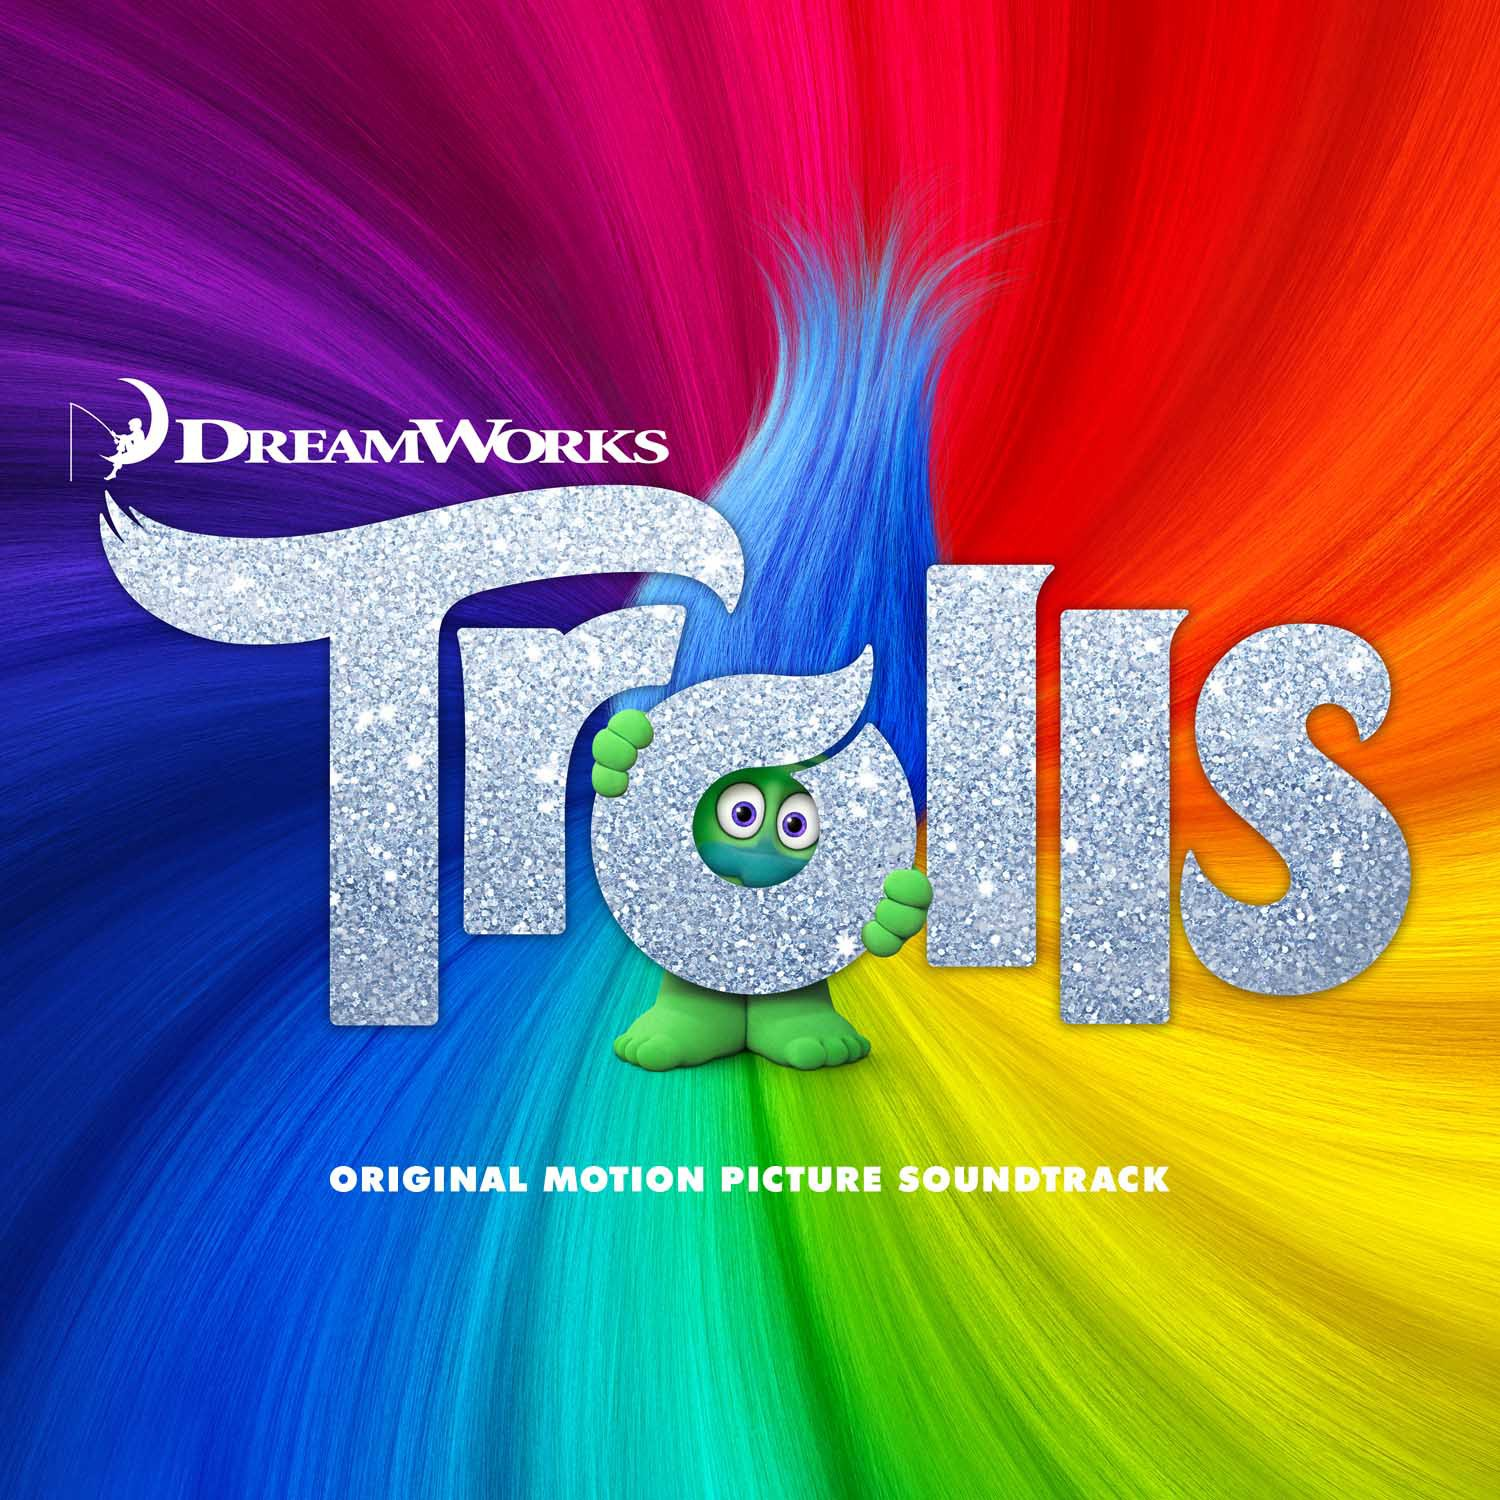 TROLLS (Original Motion Picture Soundtrack) by CD